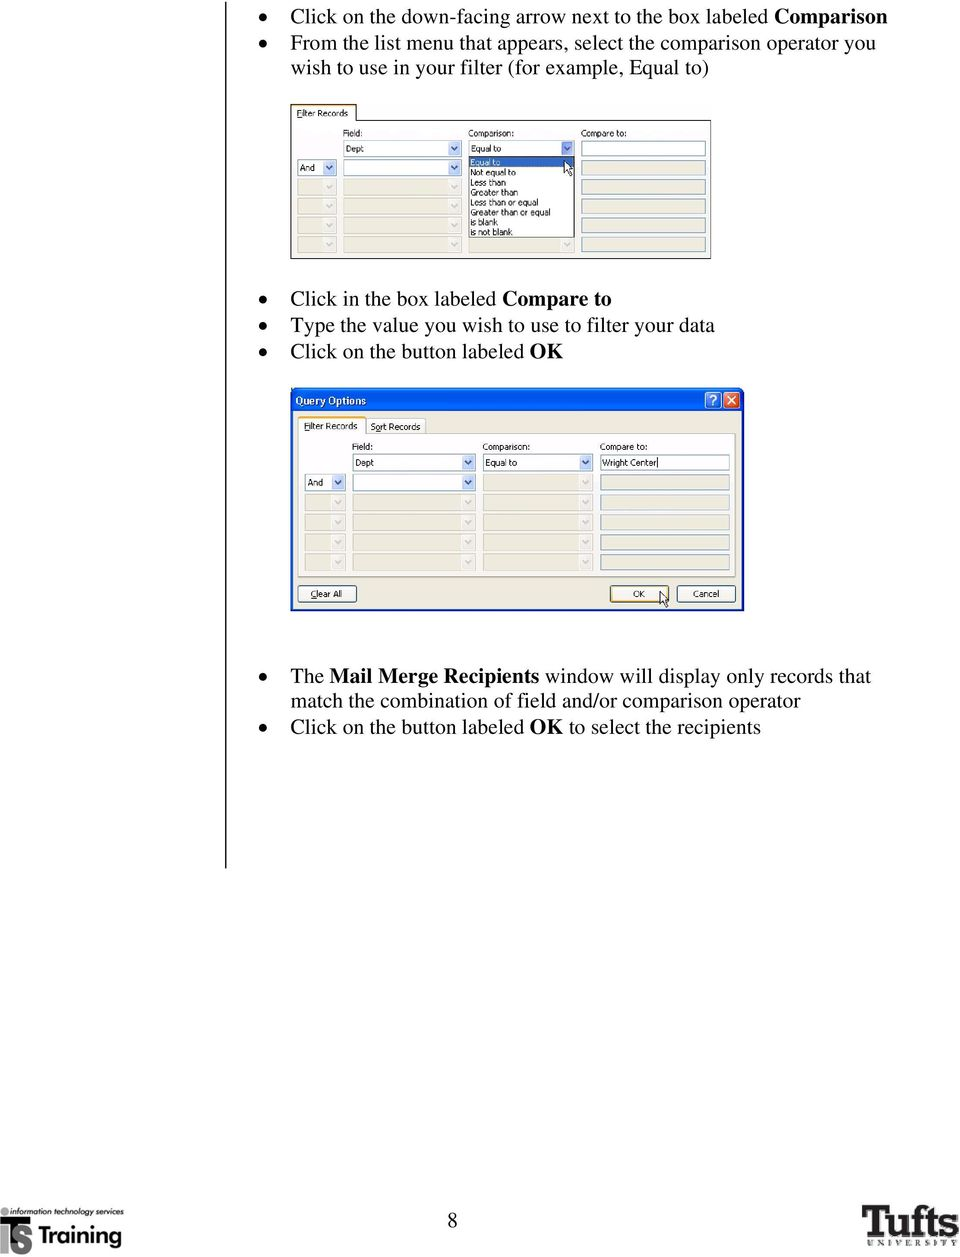 wish to use to filter your data Click on the button labeled OK The Mail Merge Recipients window will display only